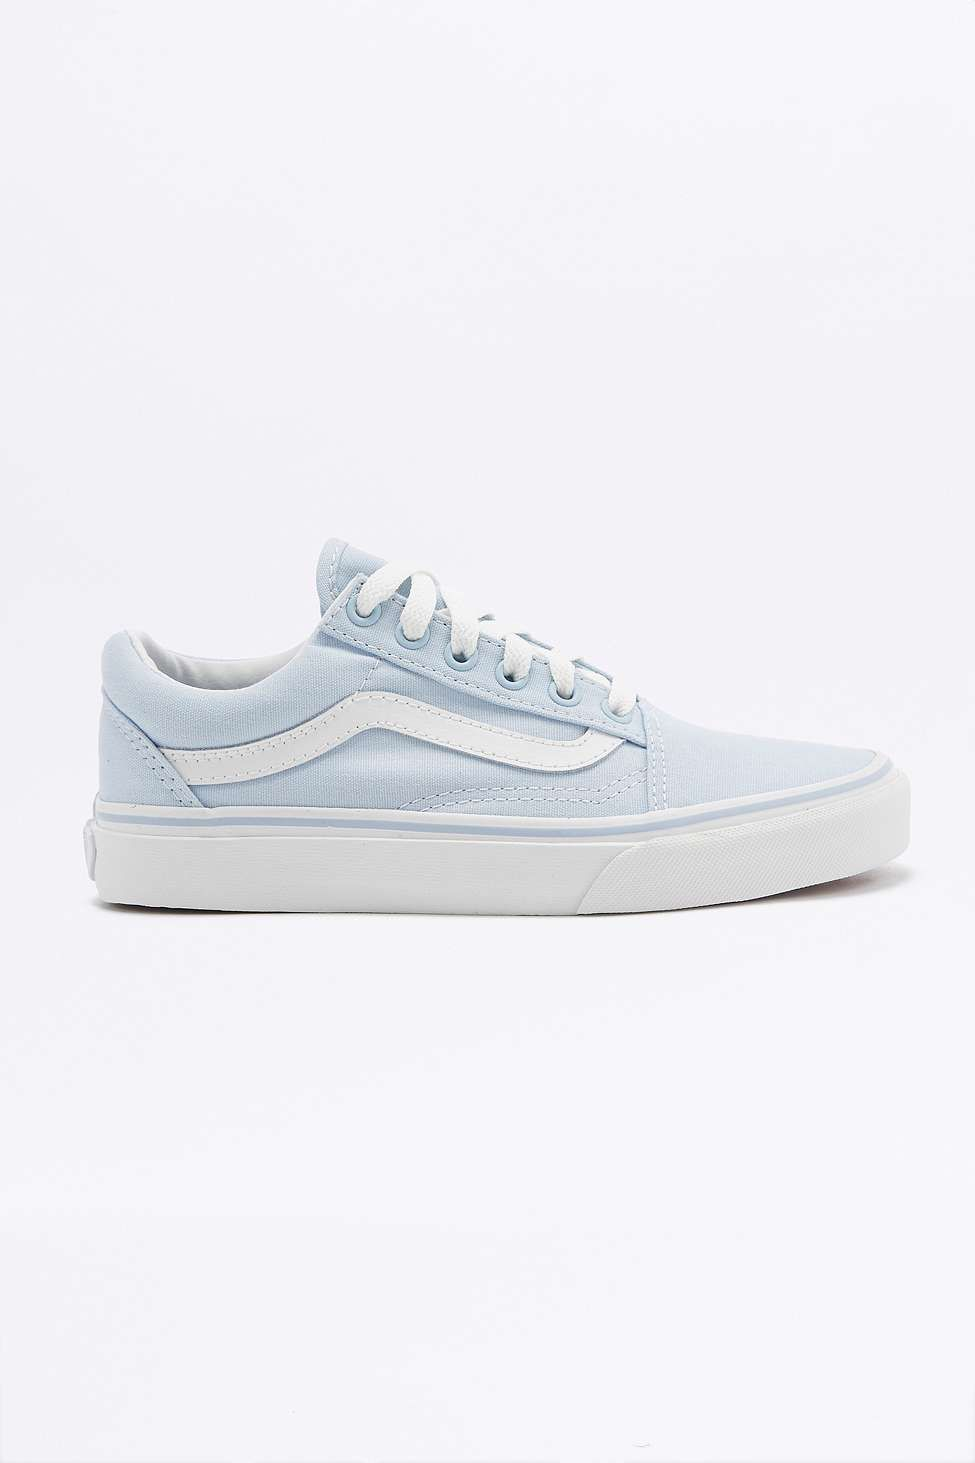 9f19f698eab Vans Old Skool Baby Blue Trainers